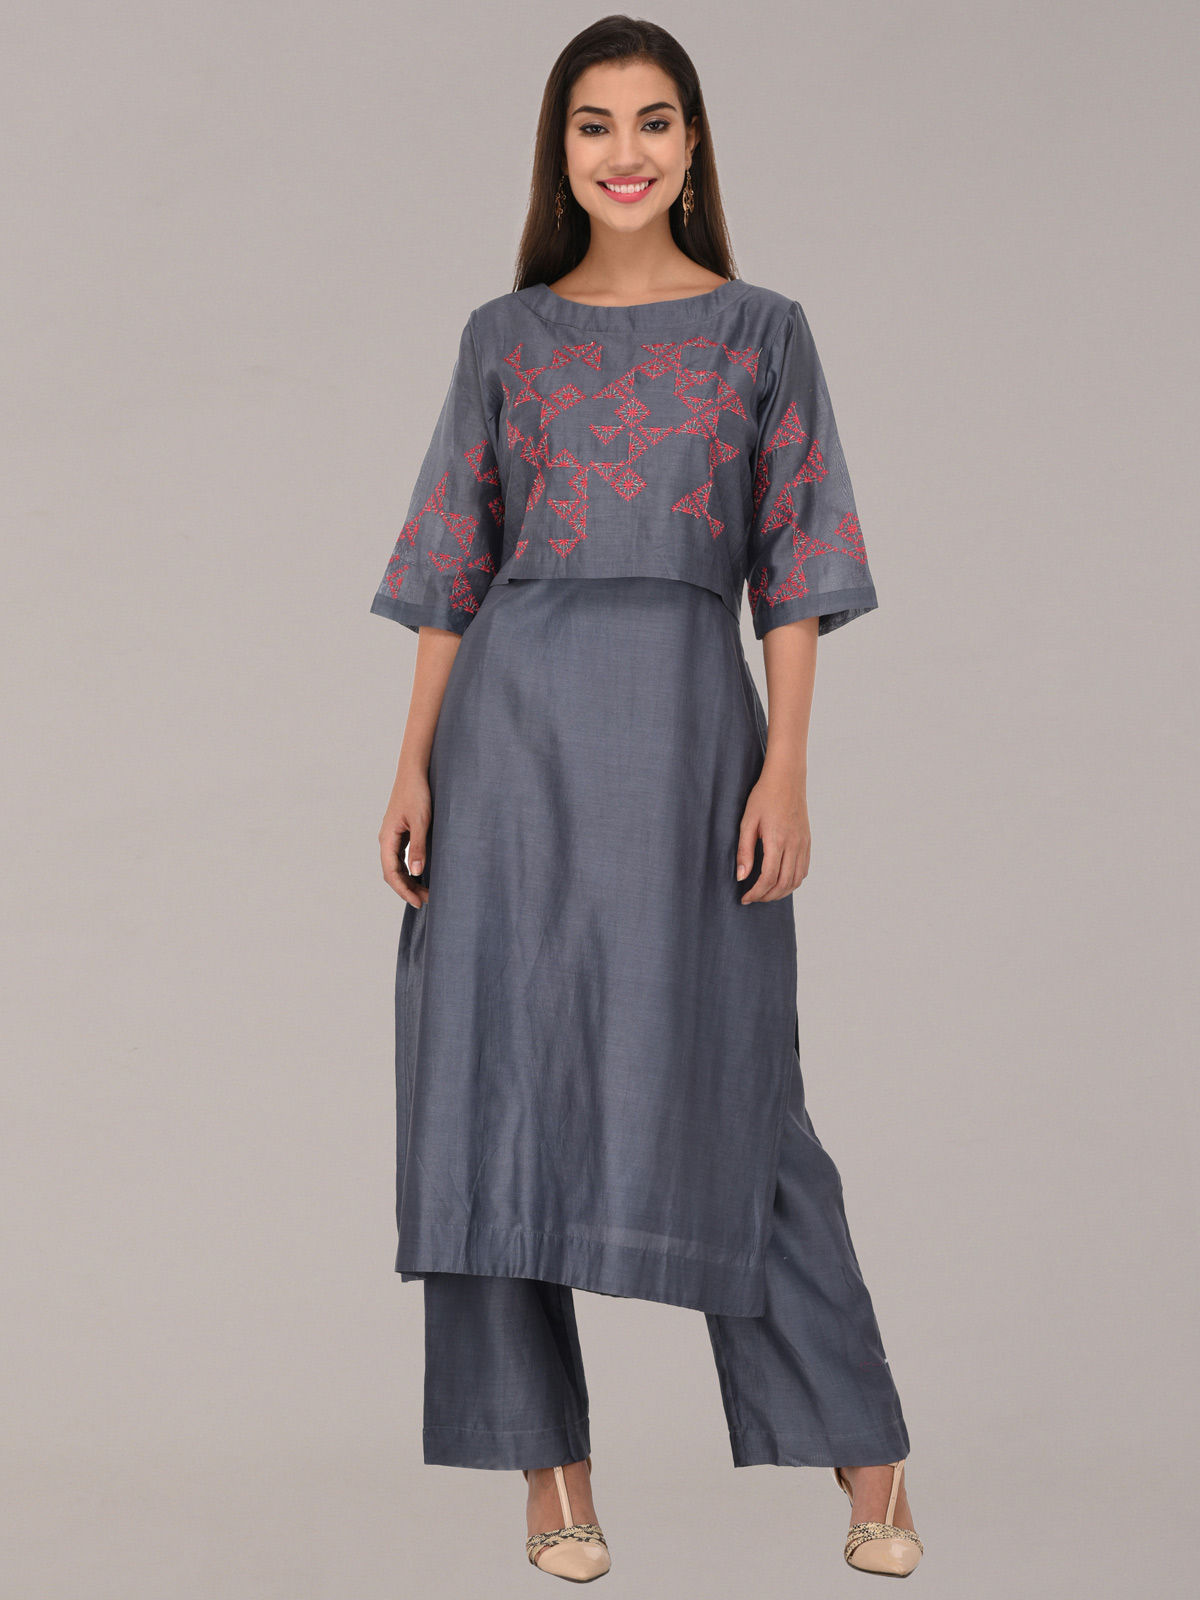 Embroided grey chanderi silk flare multi layered tunic with bottom